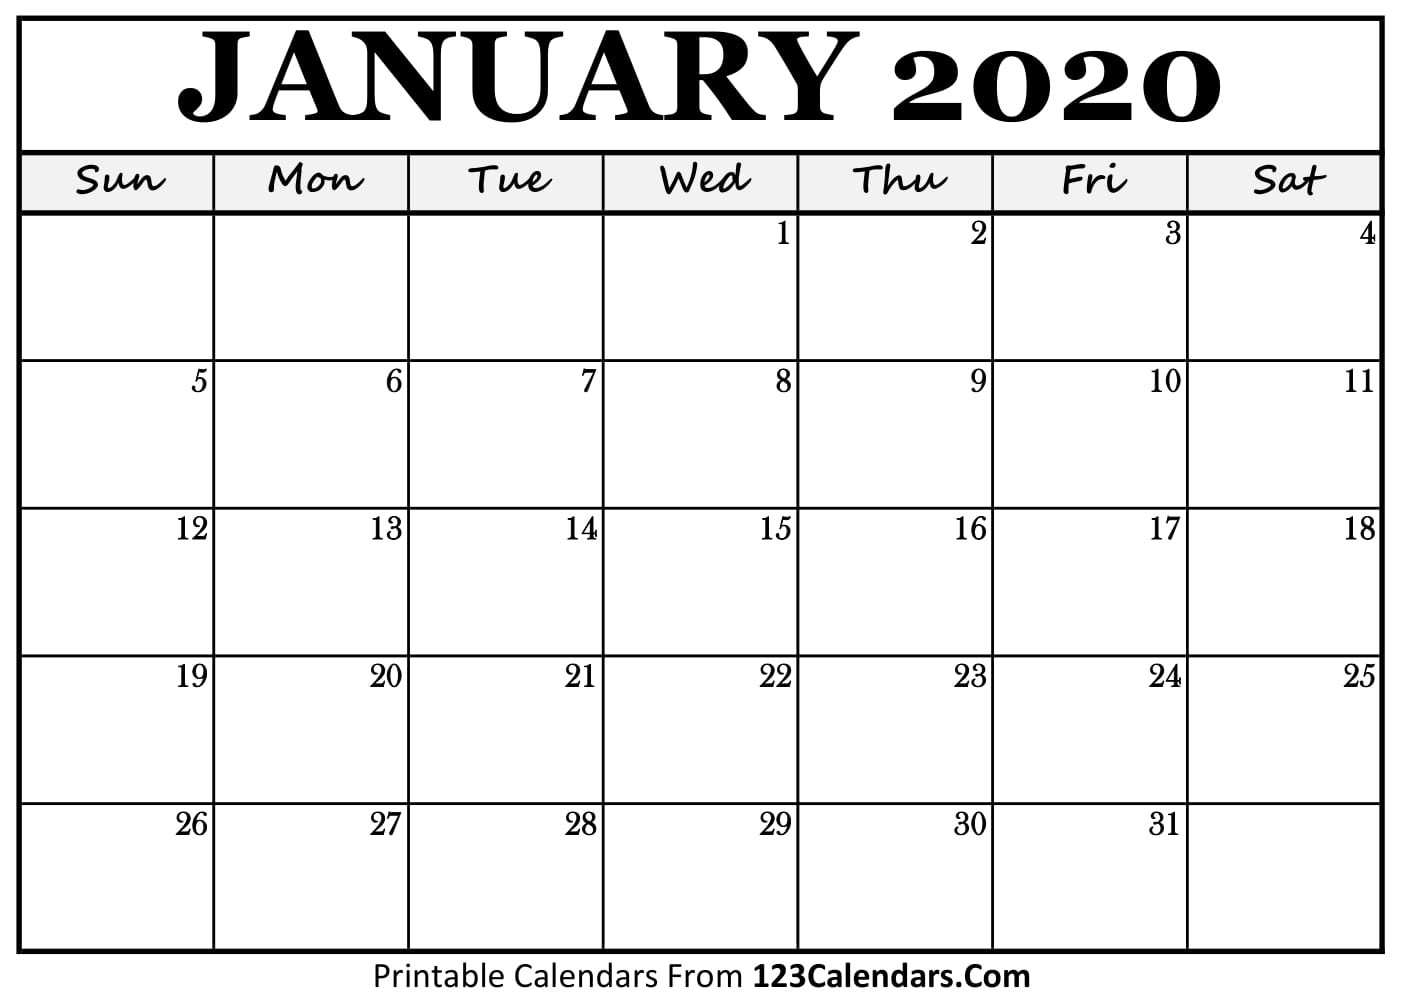 Free Printable Calendar | 123Calendars  2020 Printable Calendar By Month